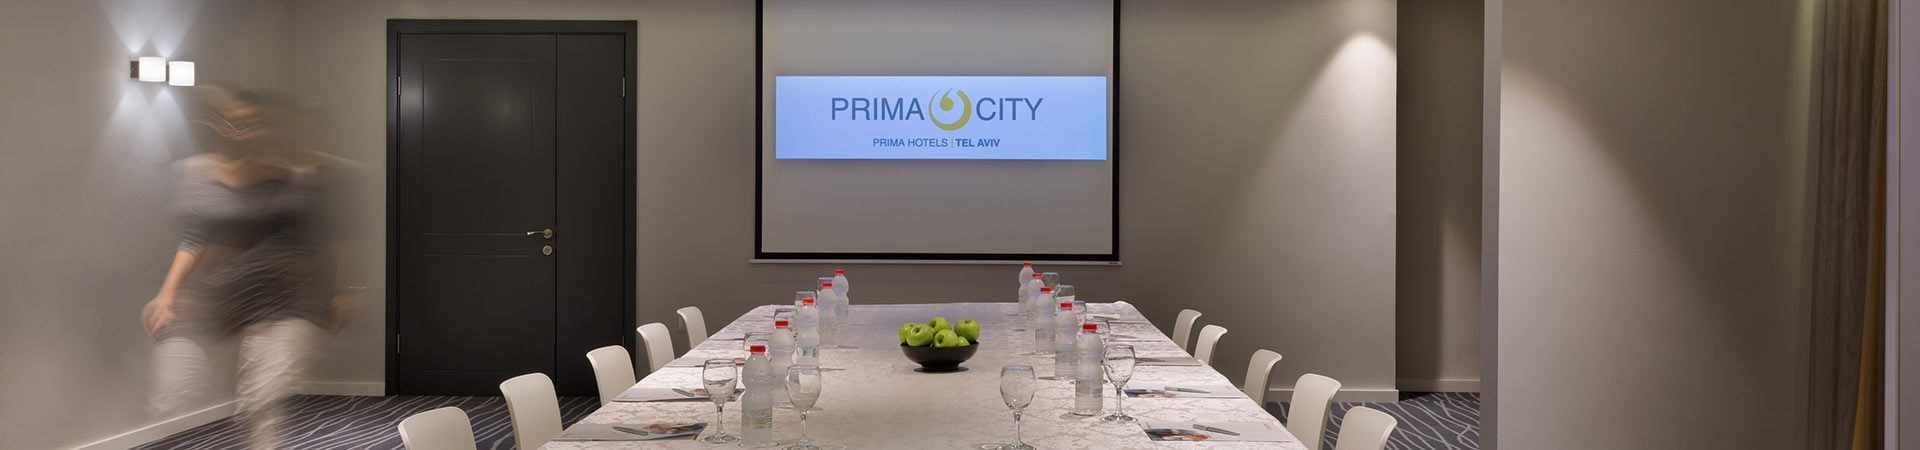 prima-city-app-meeting-room-1-1-